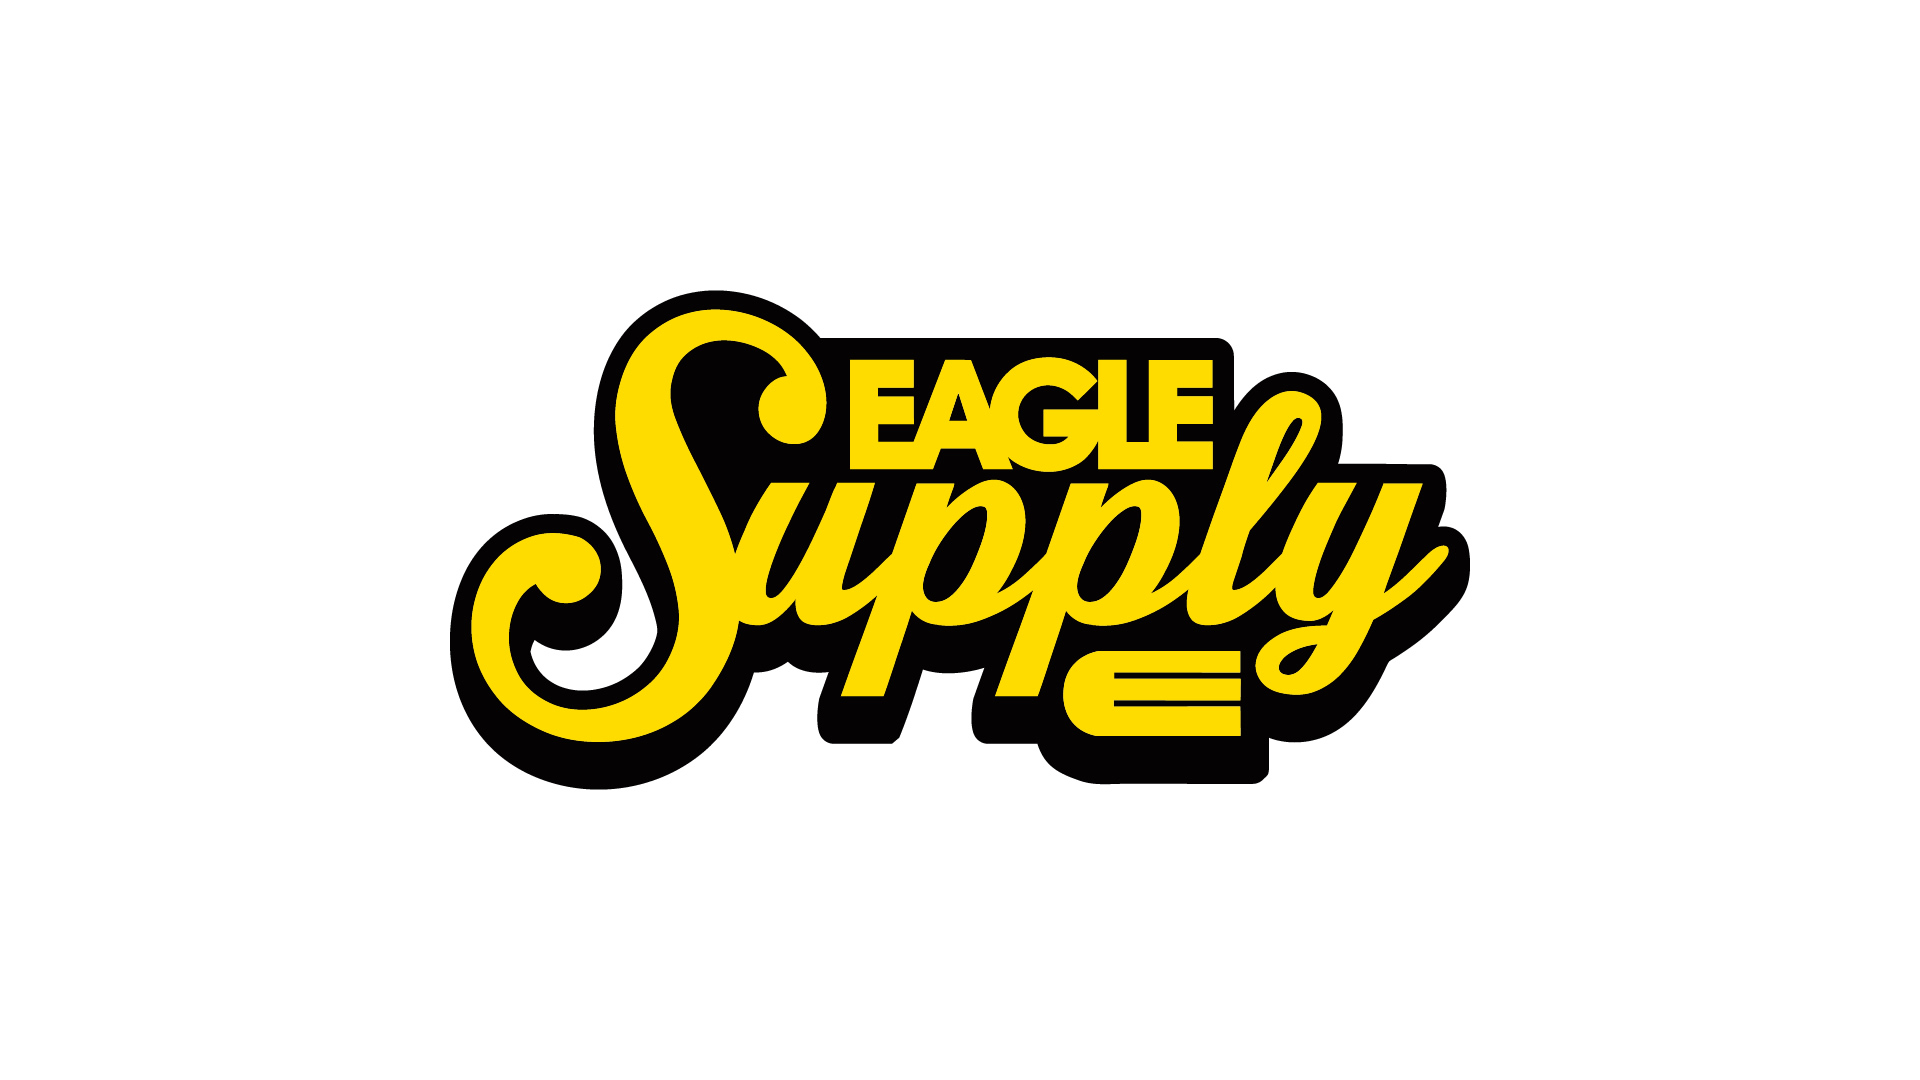 Wallpaper Eagle Supply script logo